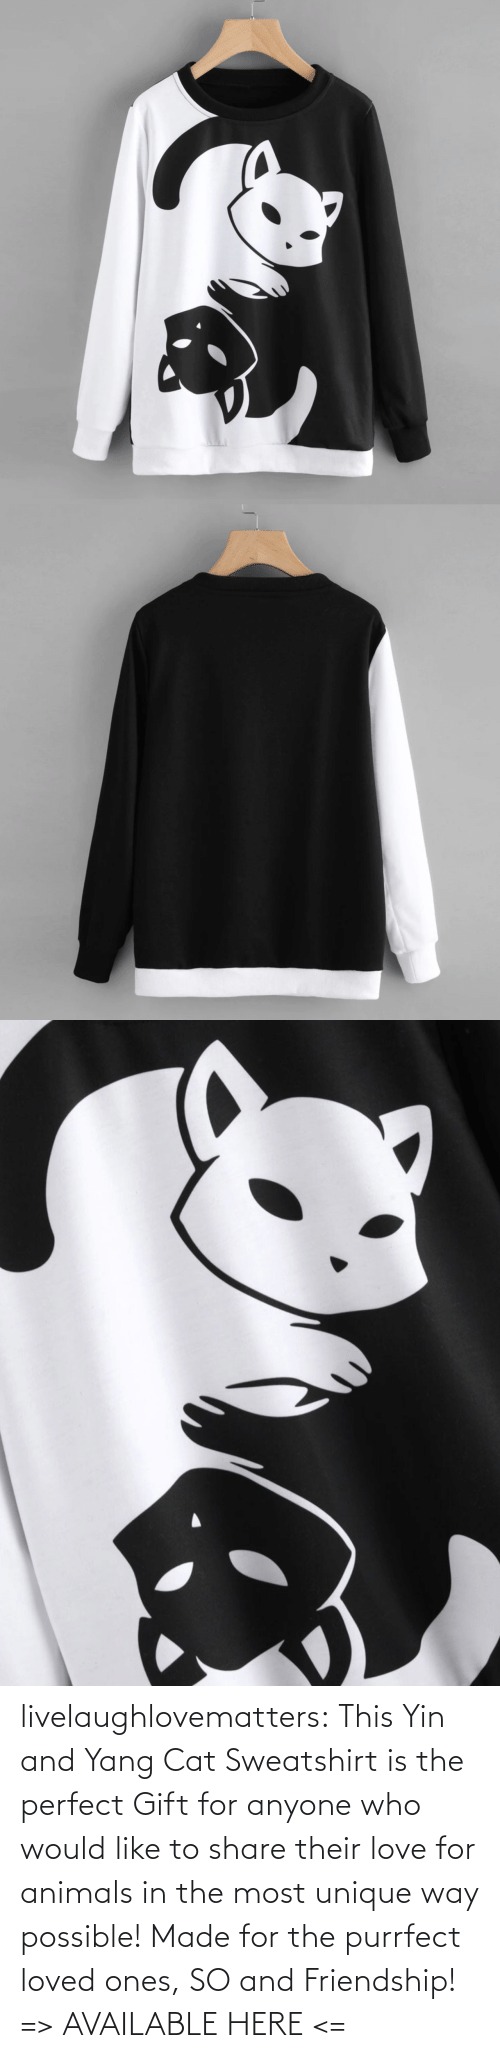 Friendship: livelaughlovematters: This Yin and Yang Cat Sweatshirt is the perfect Gift for anyone who would like to share their love for animals in the most unique way possible! Made for the purrfect loved ones, SO and Friendship!  => AVAILABLE HERE <=